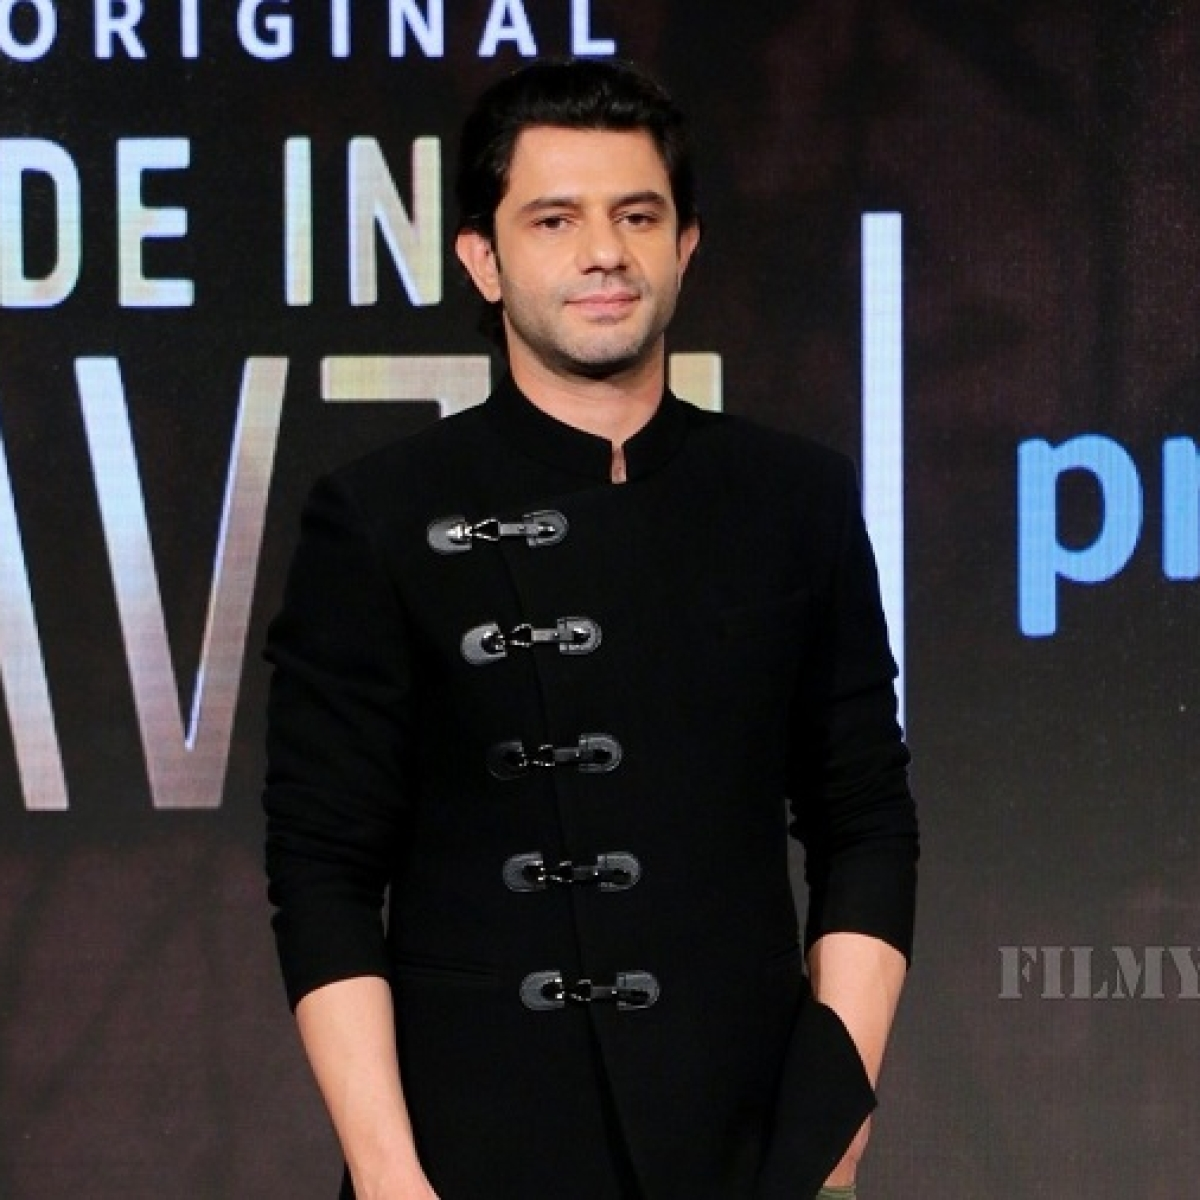 'Working for web series is indeed a boon,' says 'Made in Heaven' actor Arjun Mathur